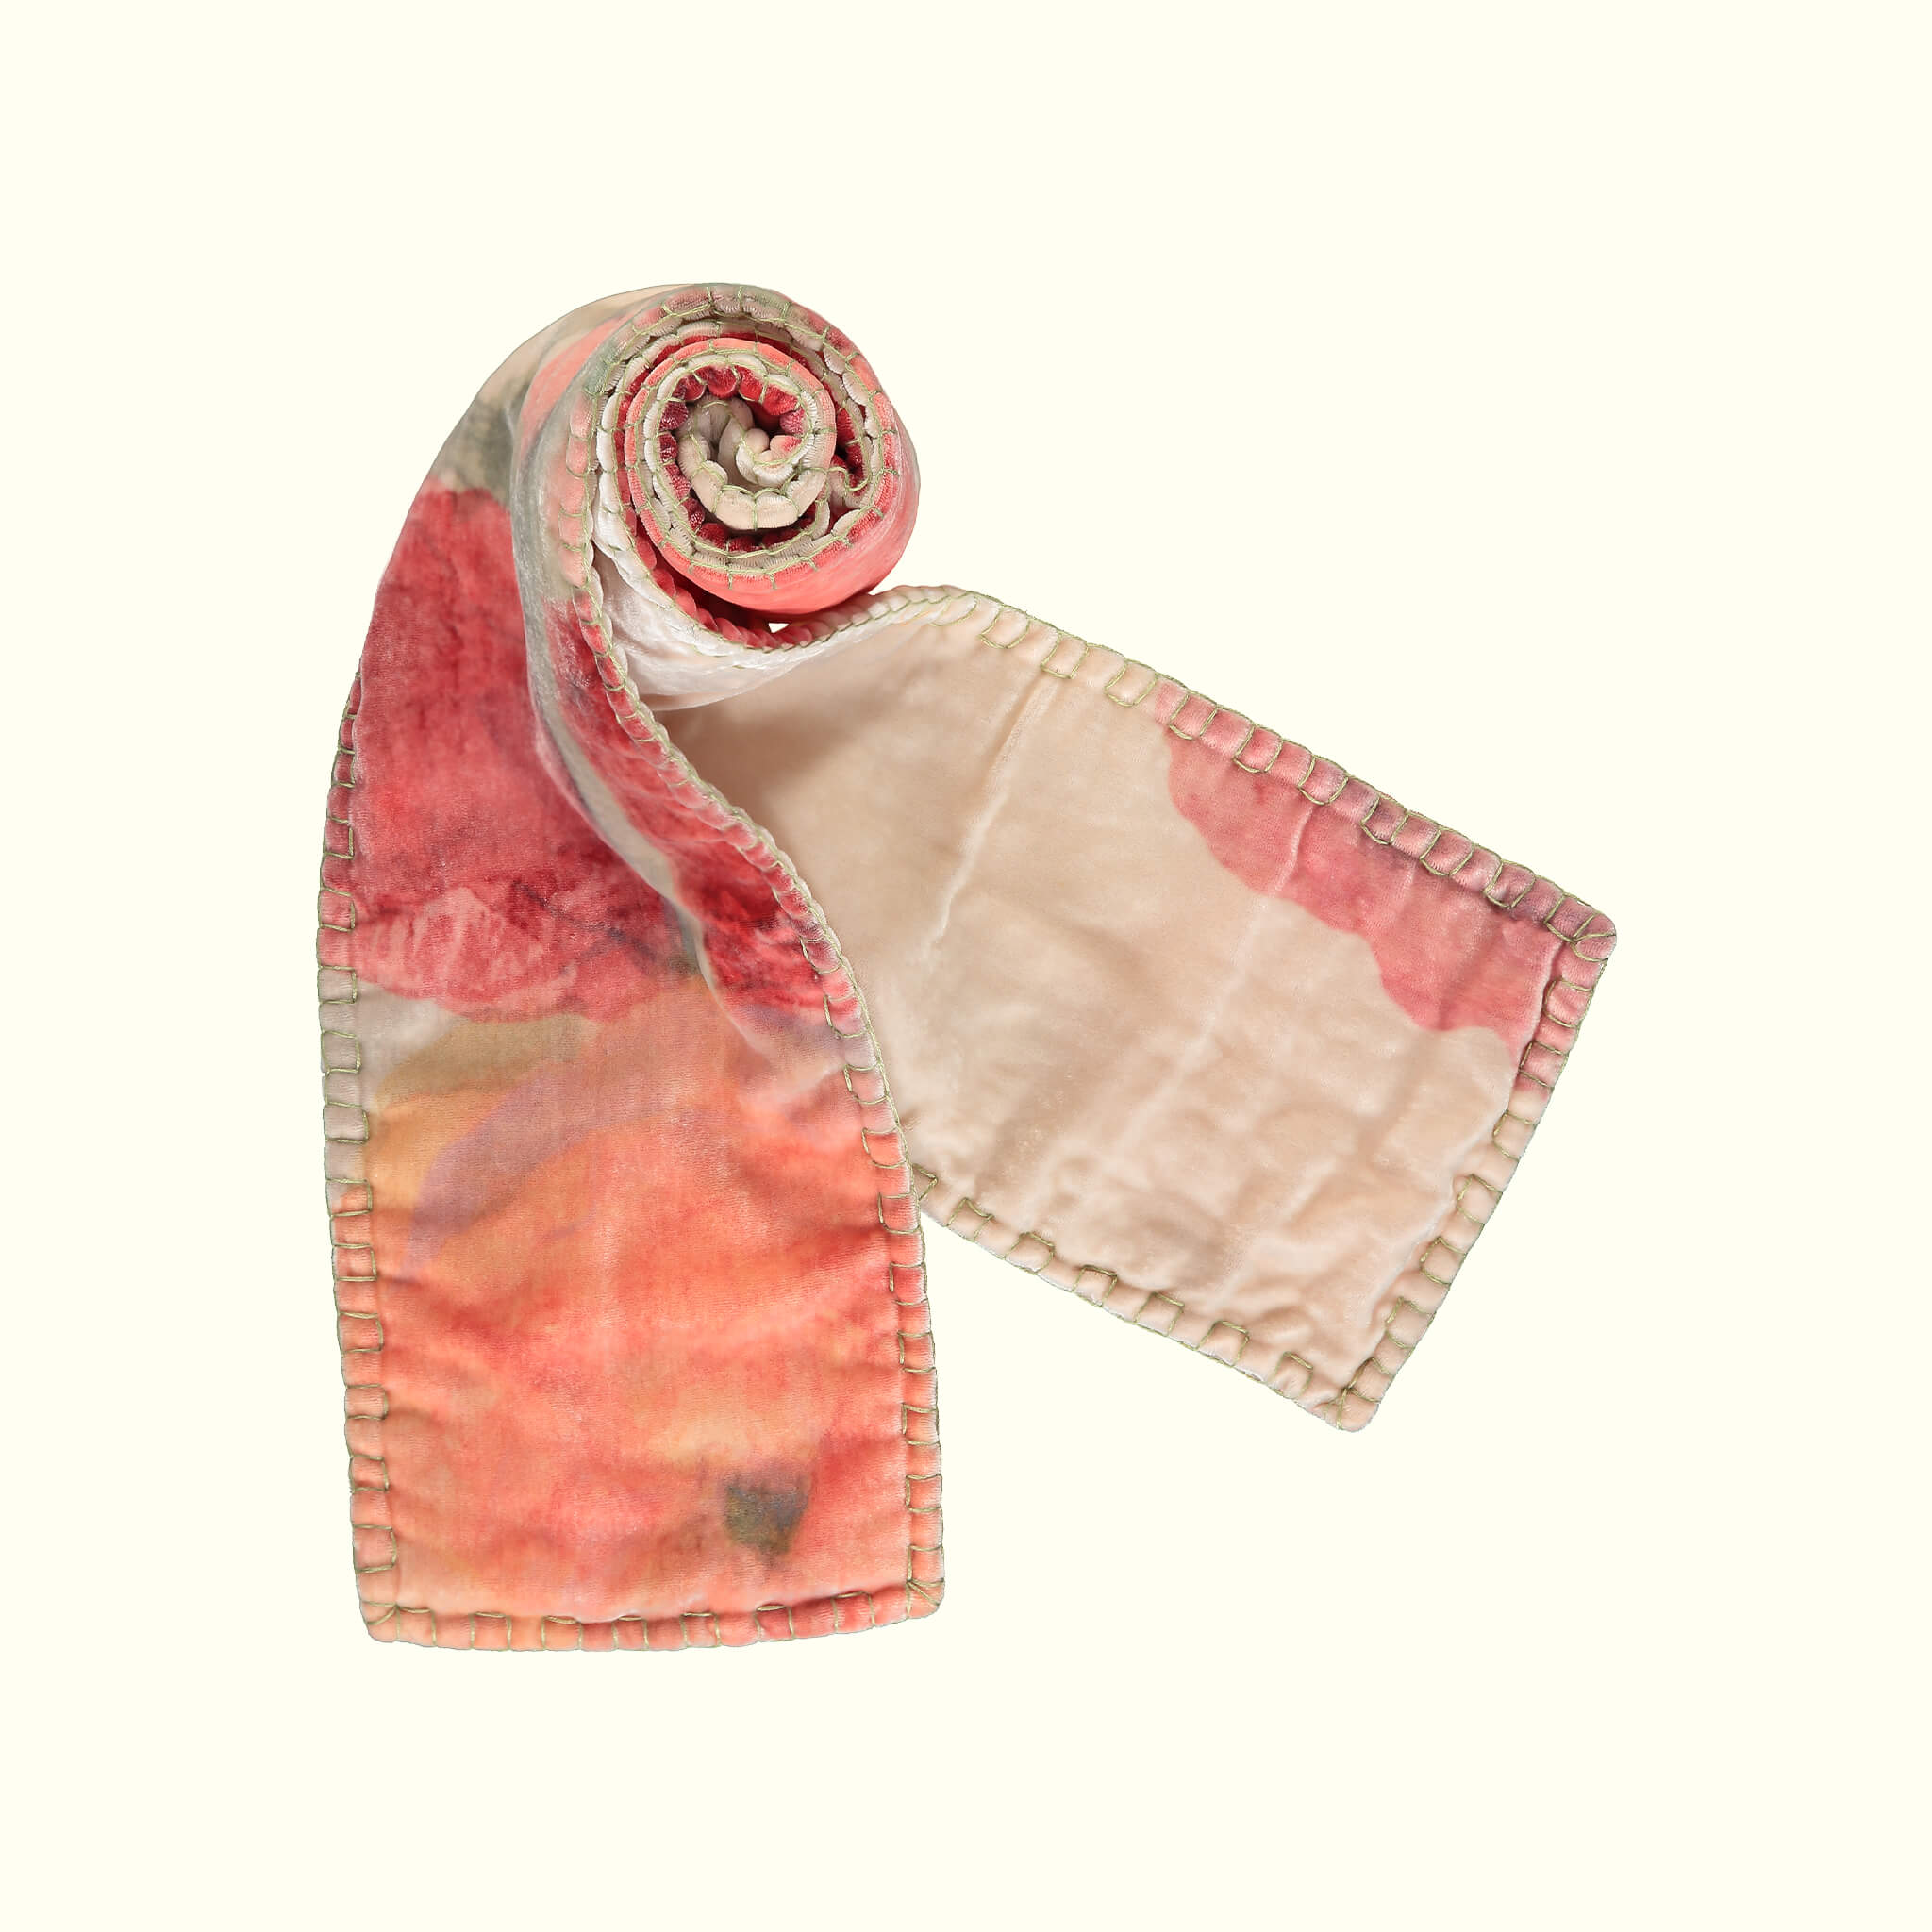 A luxury British silk velvet scarf by GVE in cream and scarlet Ranunculus print design.